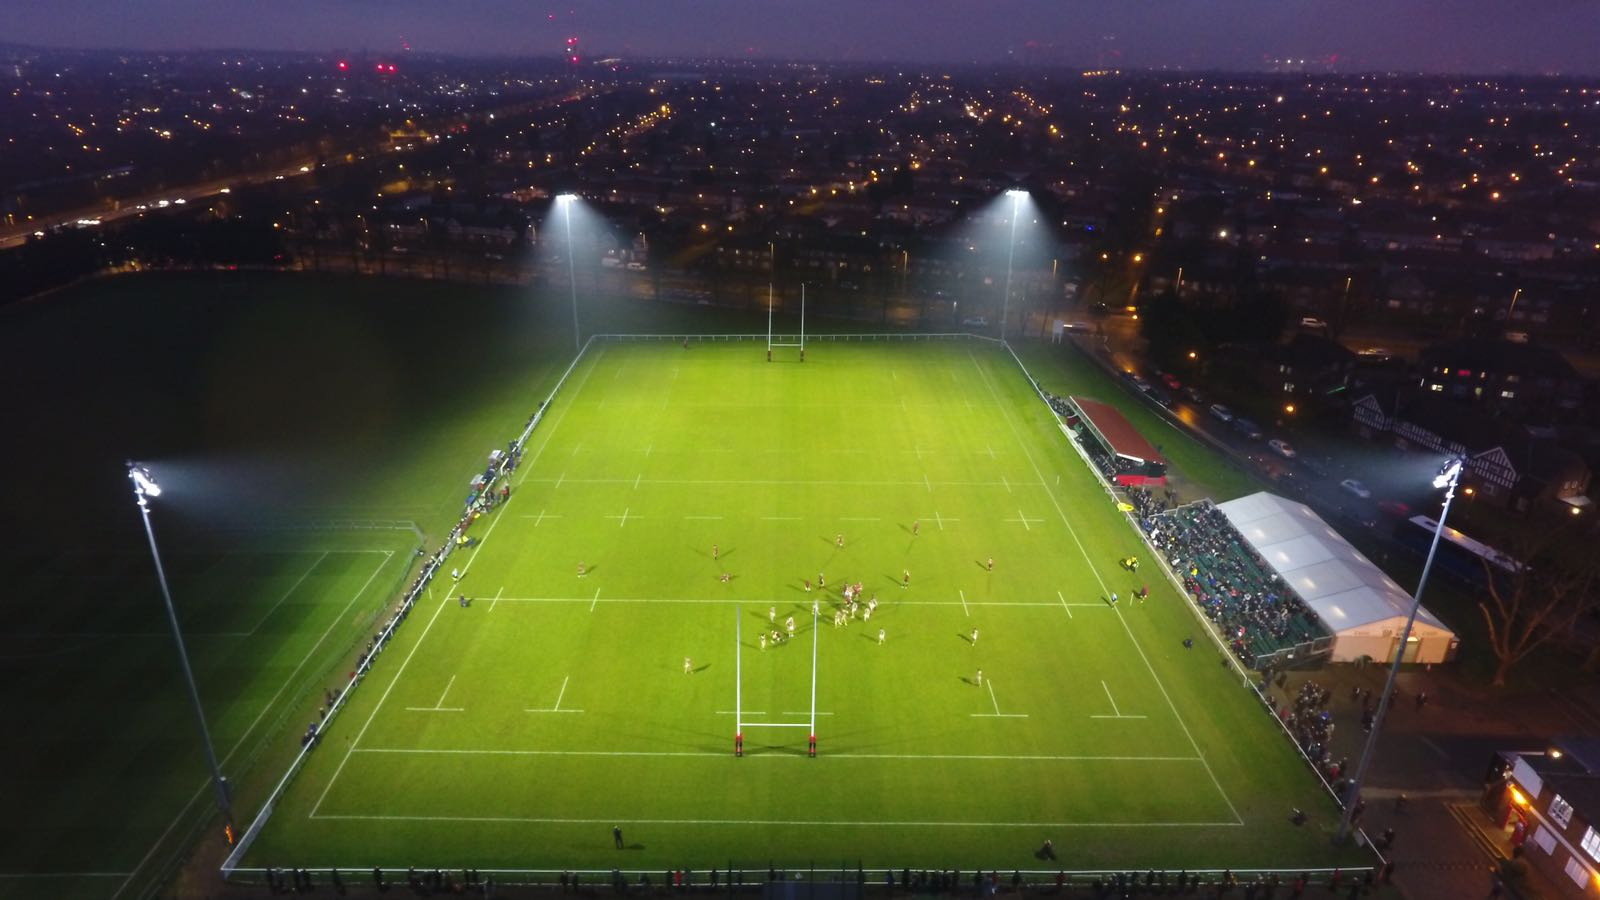 Club to Host International Rugby Once Again